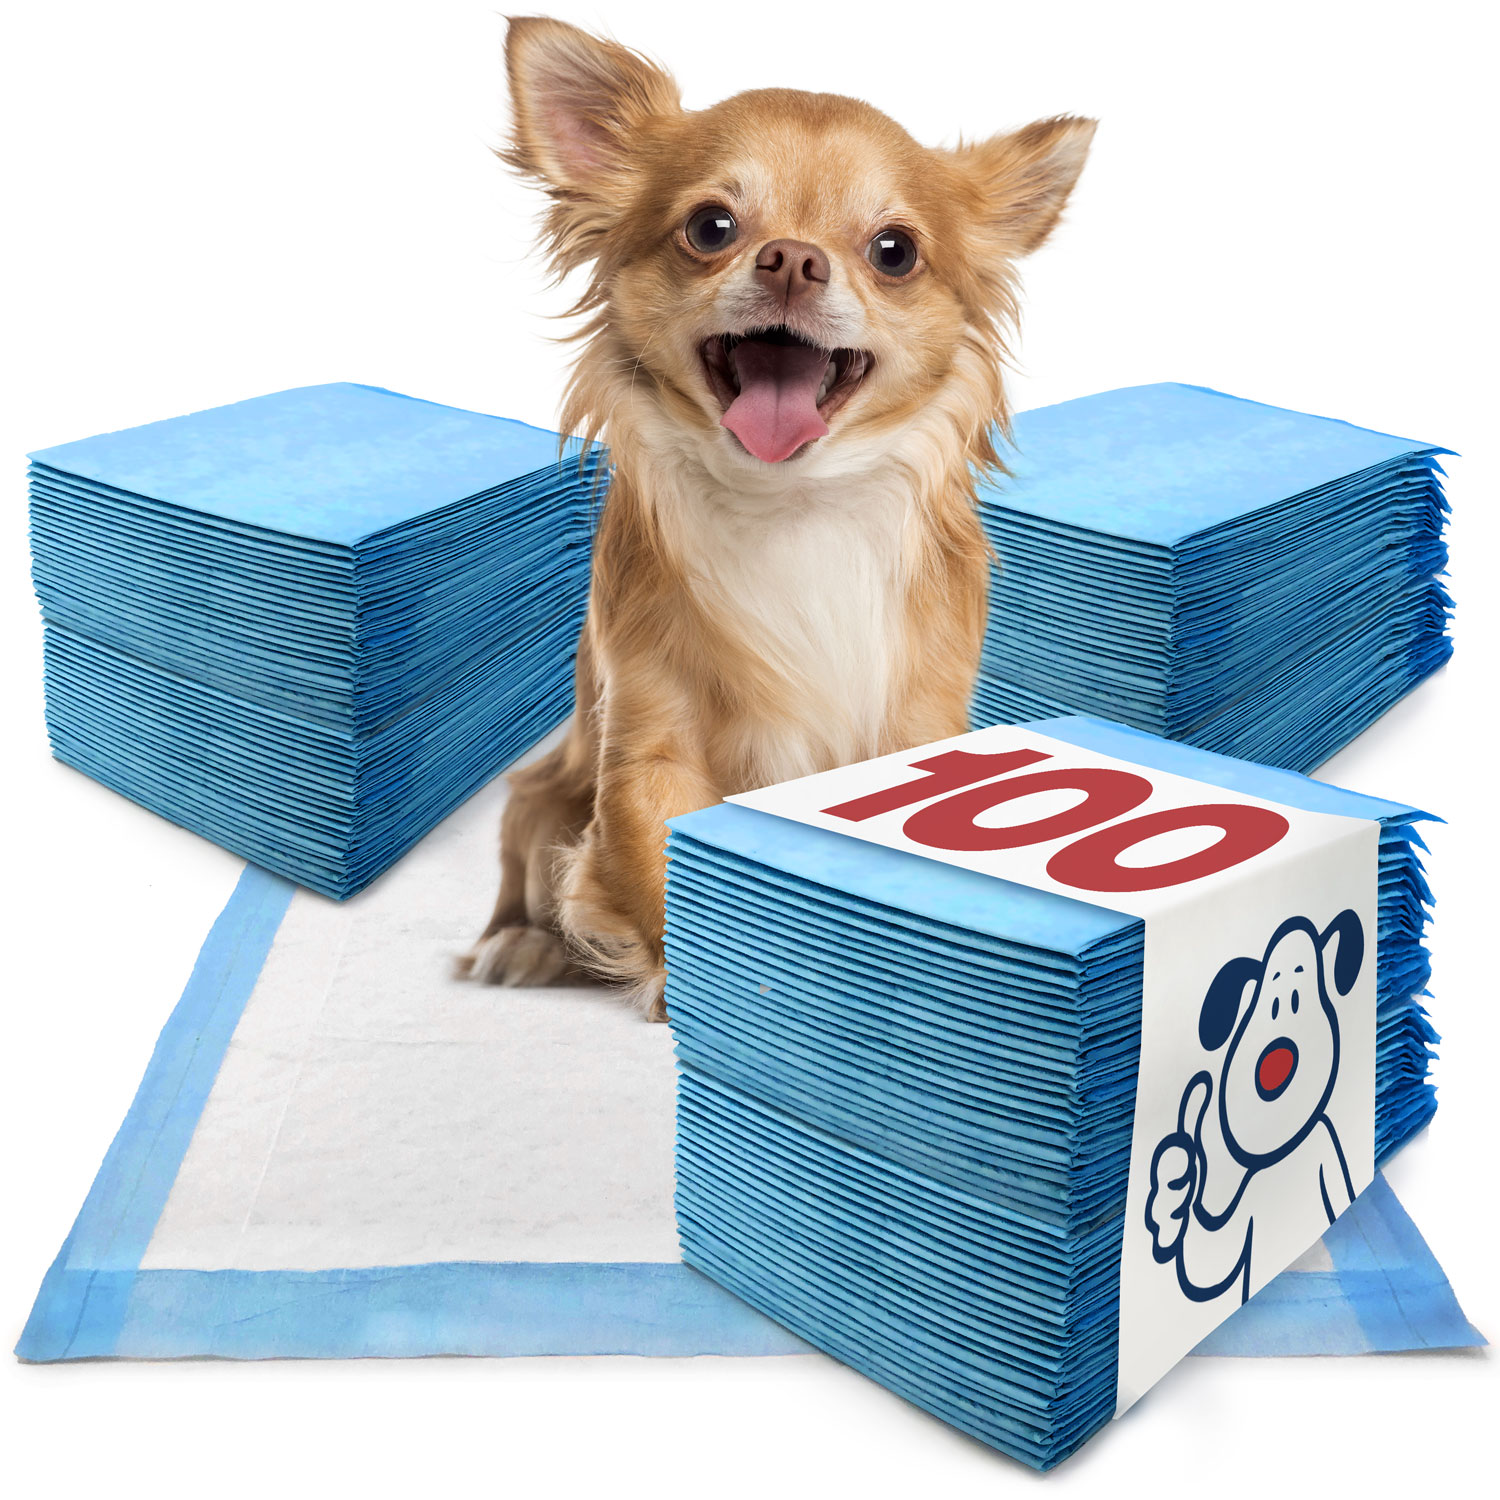 ValuePad Puppy Pads, Small 17x24 Inch, 100 Count